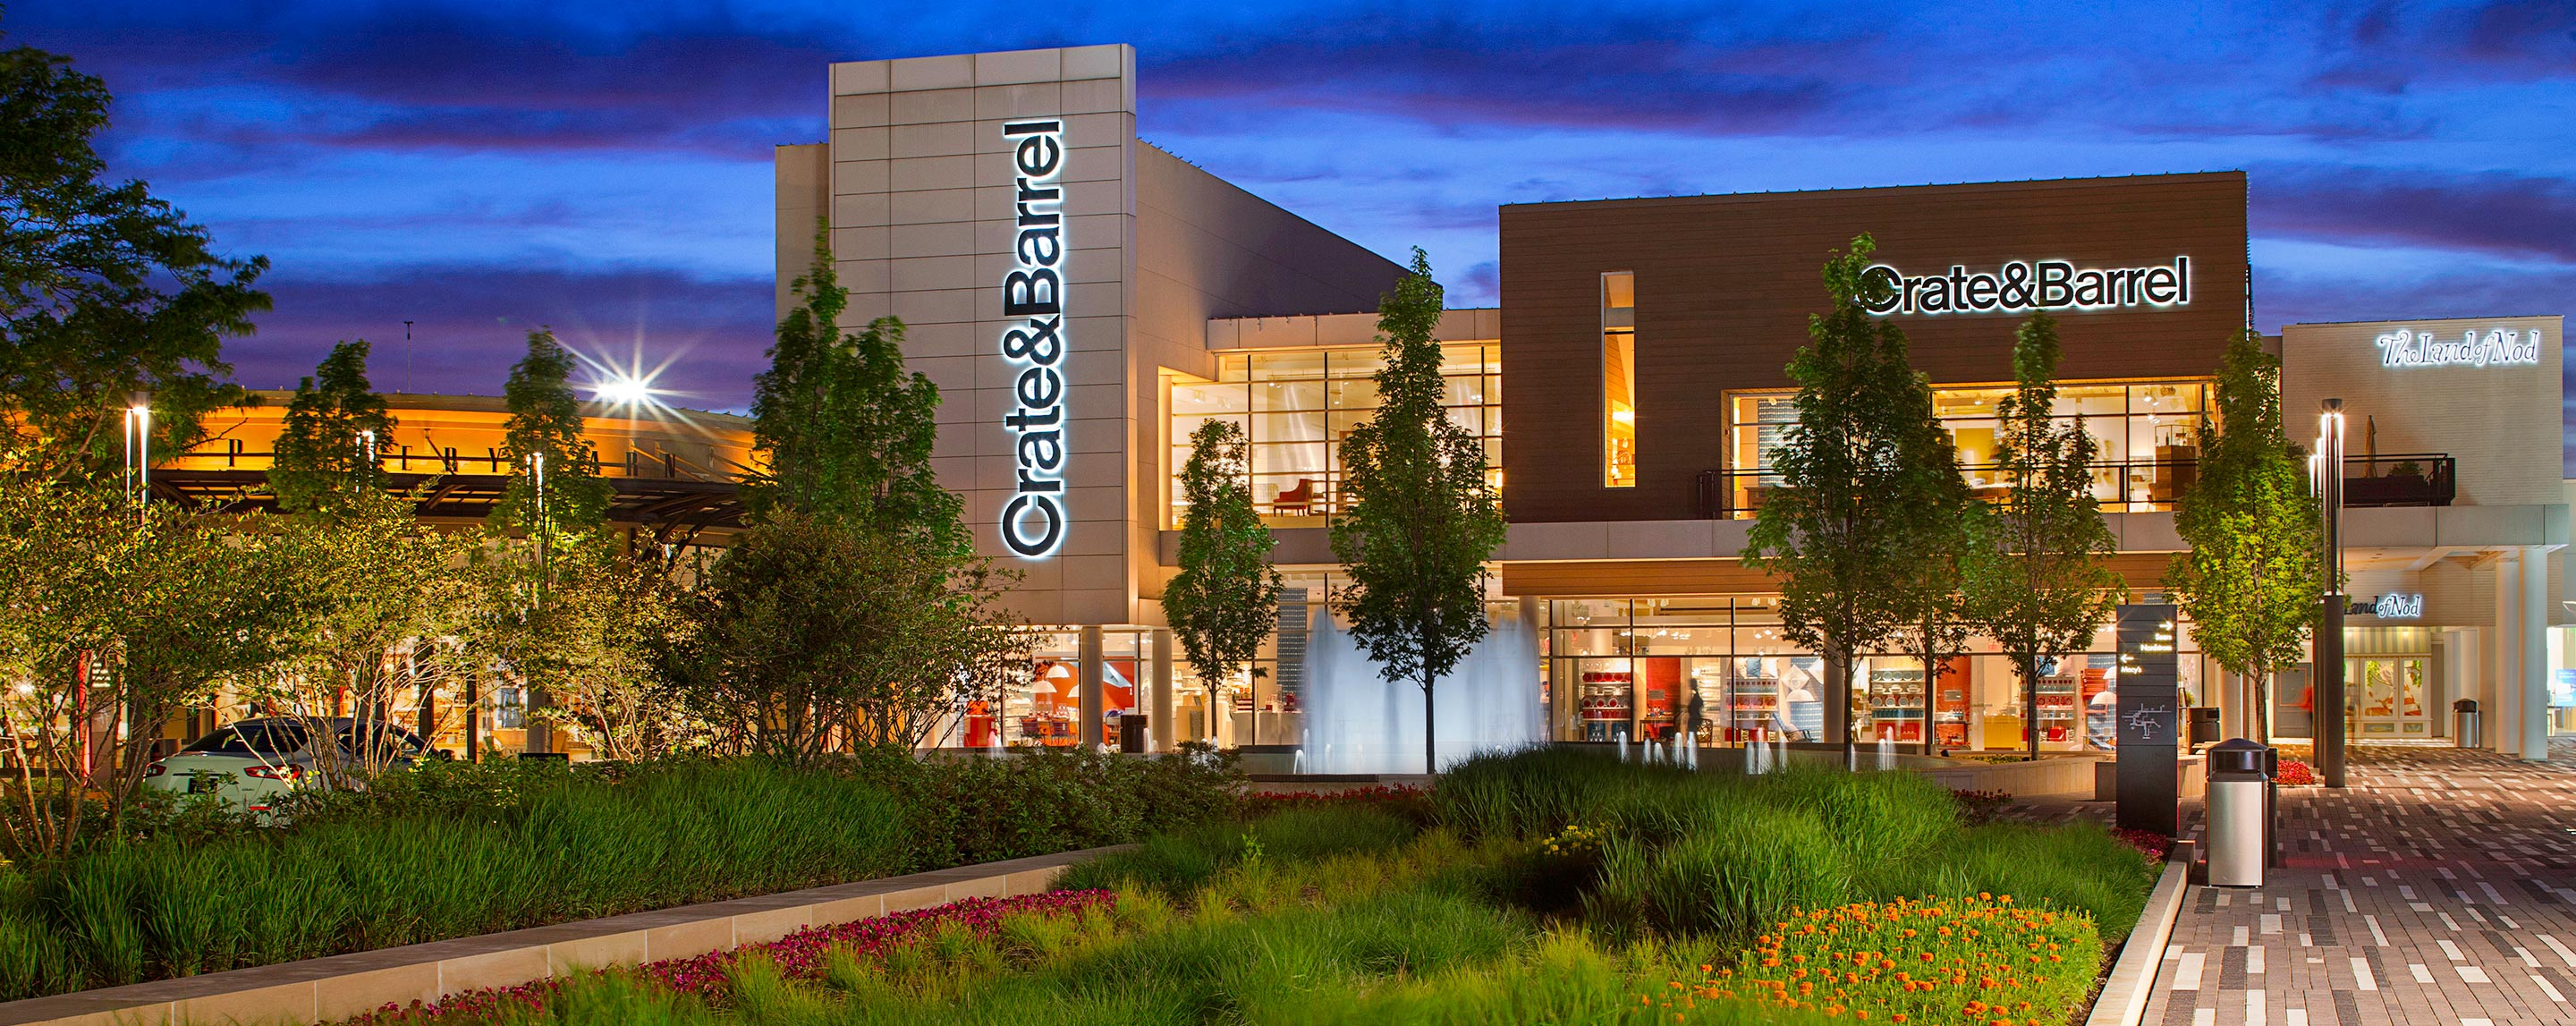 At dusk, GGP's Oakbrook Center has beautiful plants and trees in the common area in front of a Crate and Barrel store.